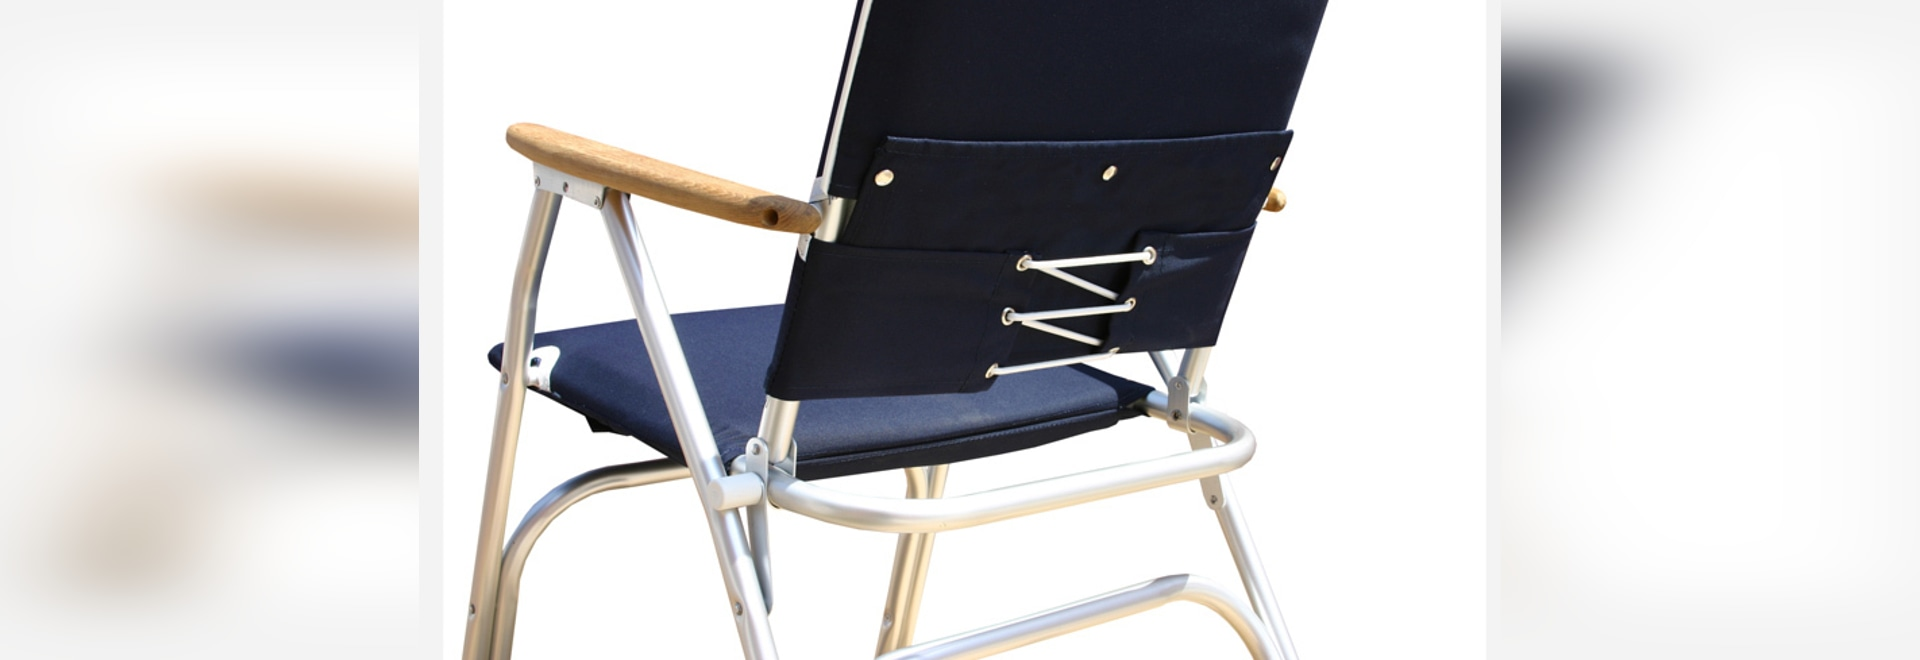 The Forma marine furniture Advisor  | Selecting the right boat chair